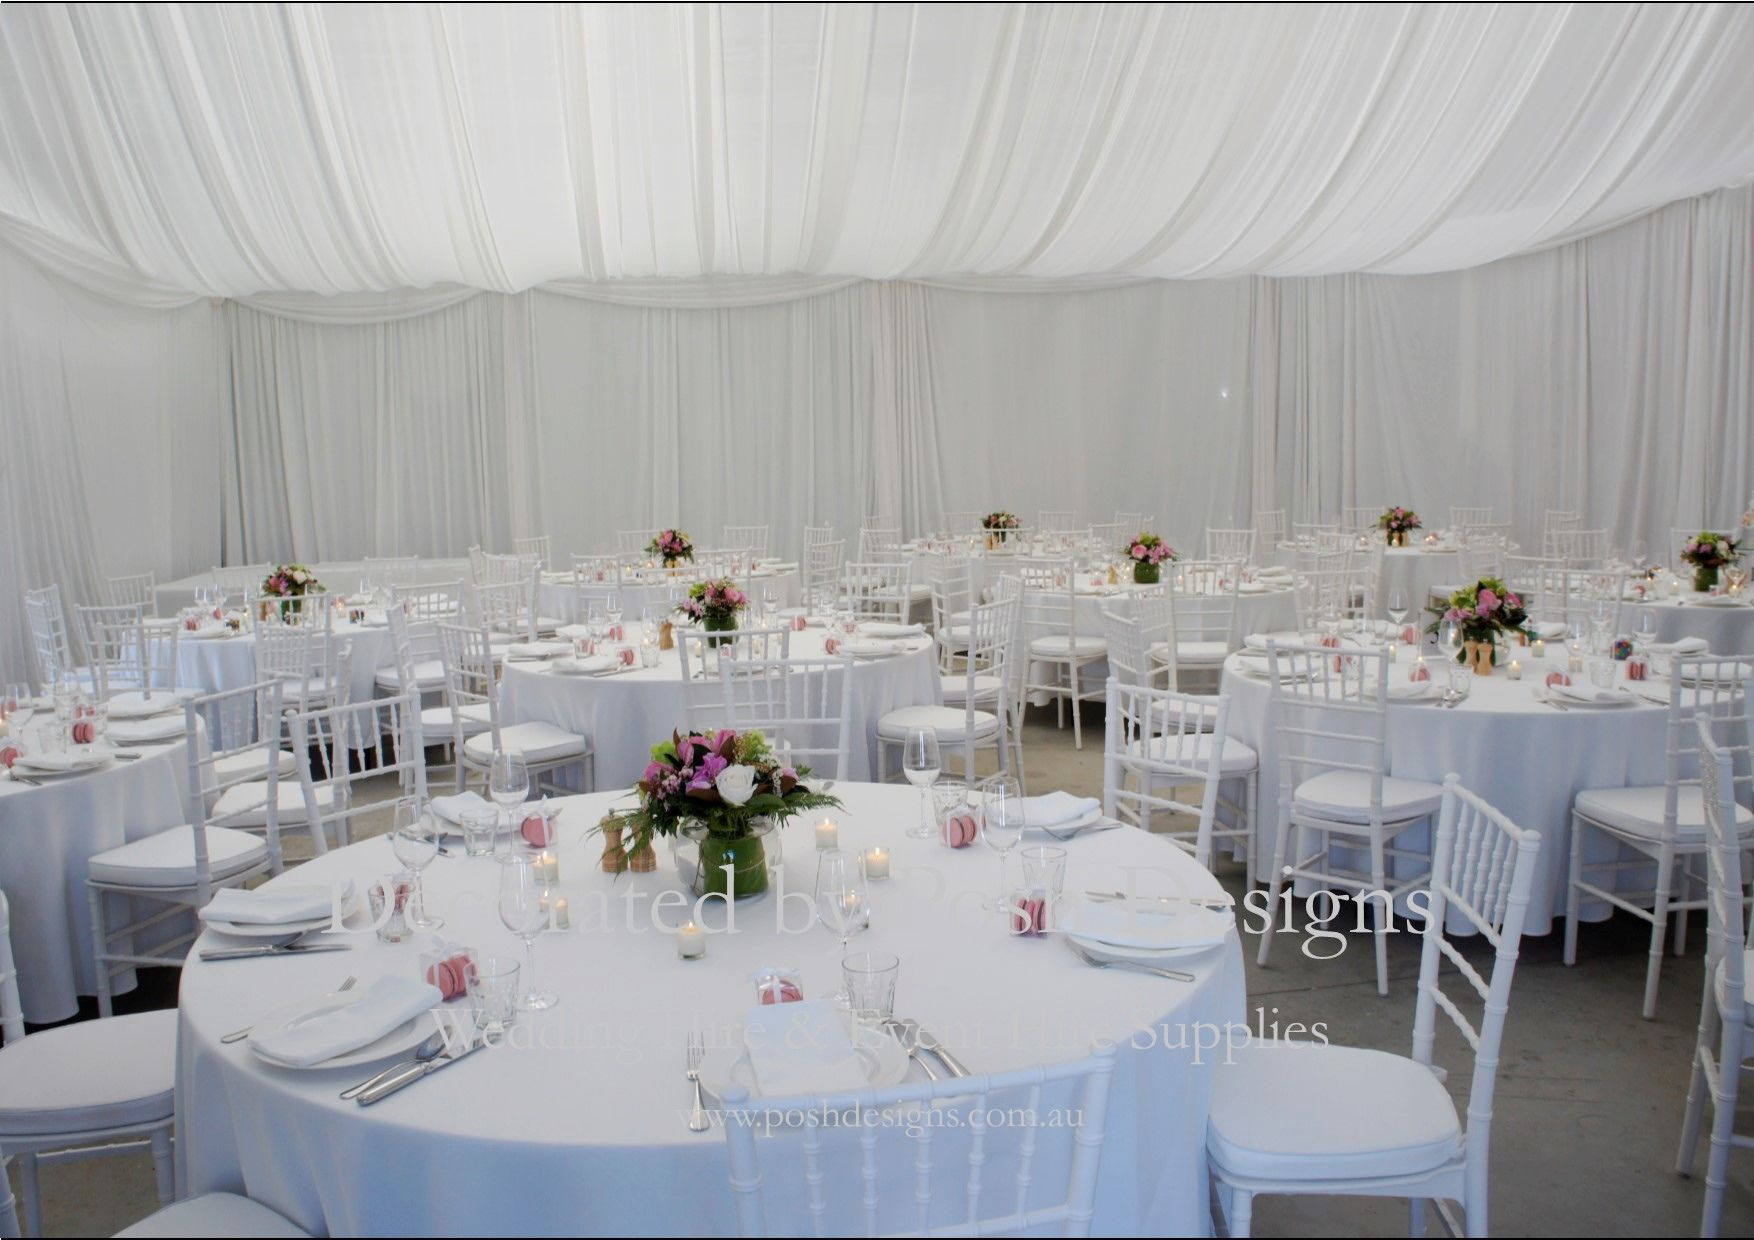 White tiffany chairs white table cloths flower white wall and white tiffany chairs white table cloths flower white wall and roof draping flower table centres all for hire for your wedding or event australia wide junglespirit Images